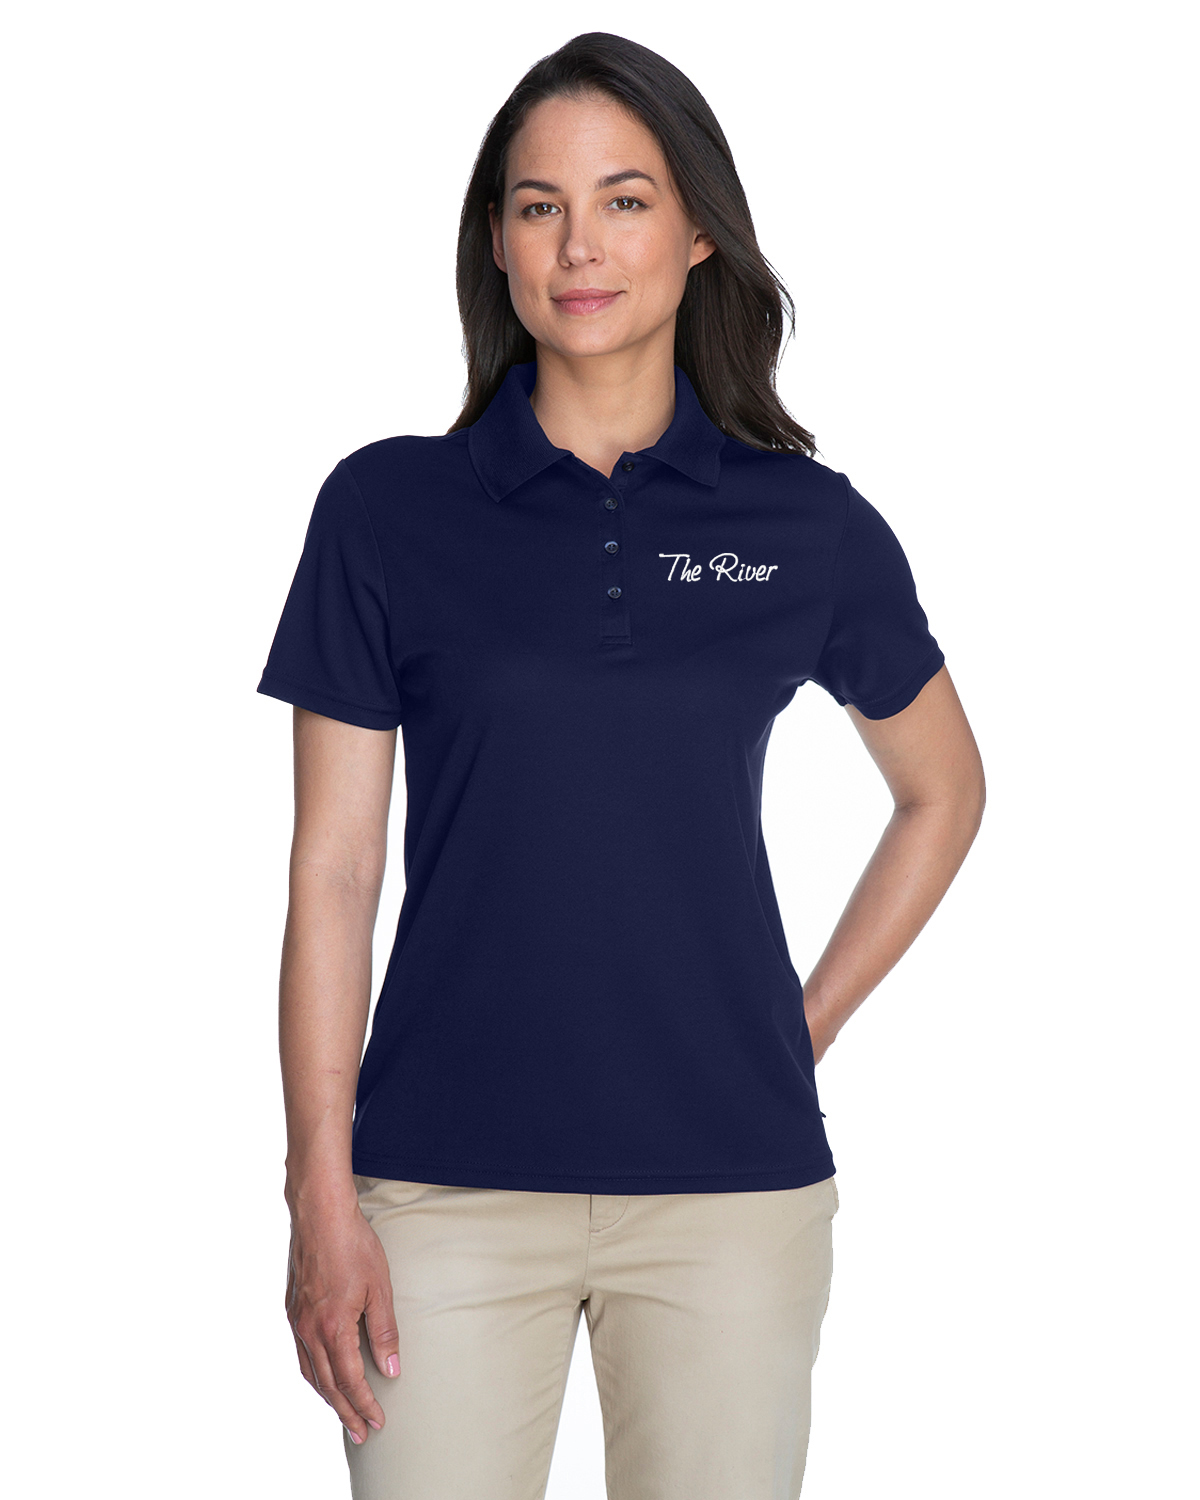 78181 Core 365 Ladies' Origin Performance Piqué Polo Classic Navy